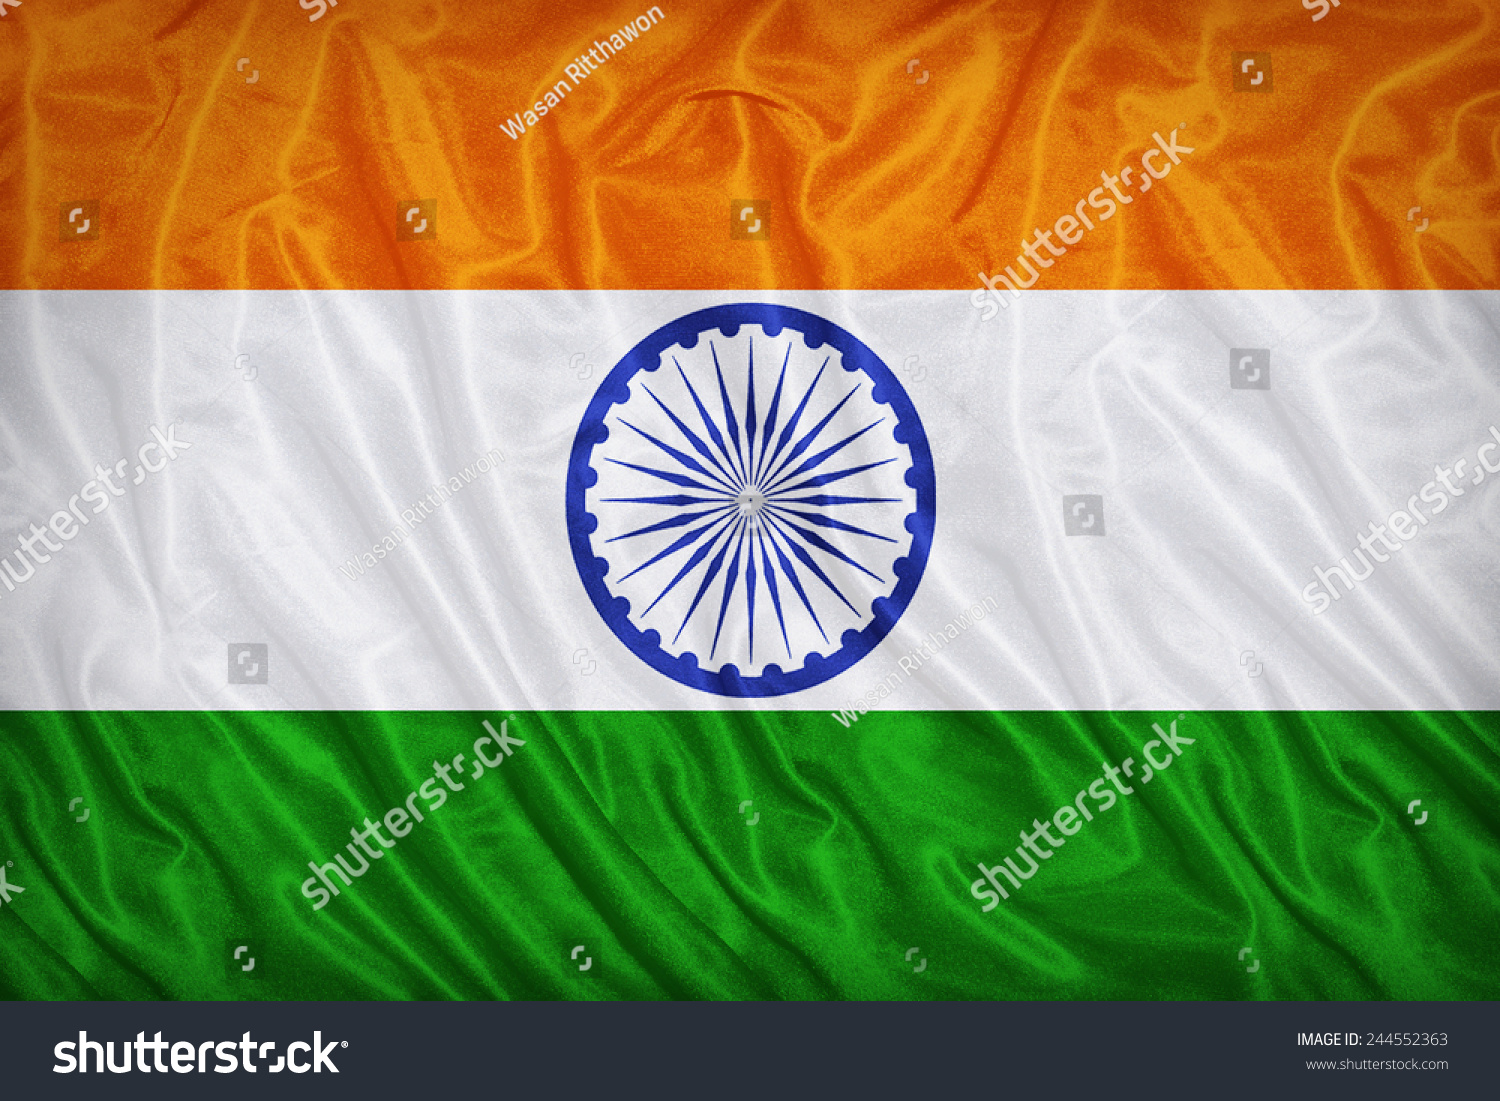 Clothe India Flag Hd: India Flag Pattern On Fabric Texture Stock Photo 244552363